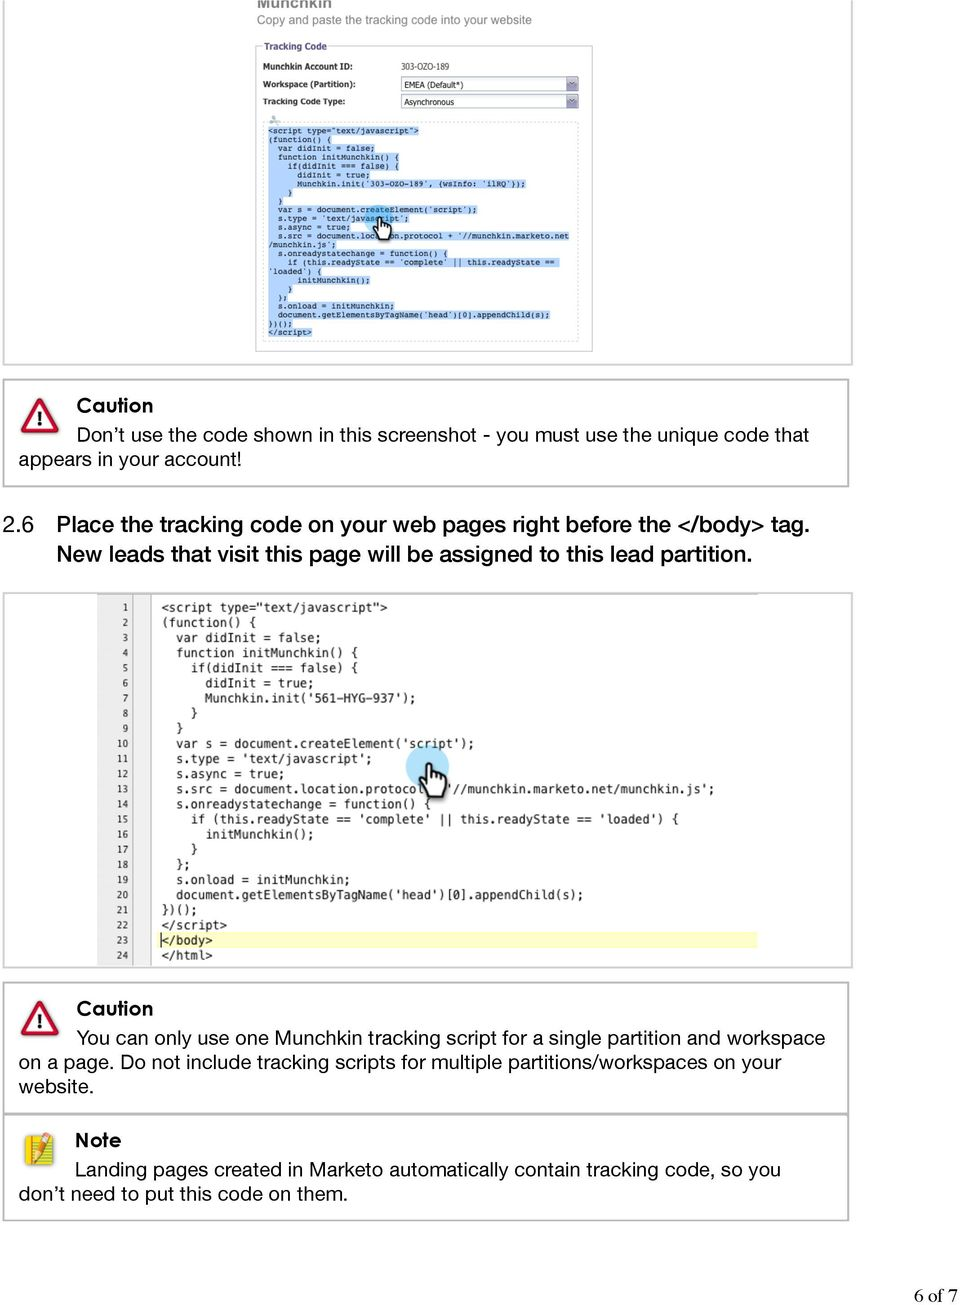 Add Munchkin Tracking Code to Your Website - PDF